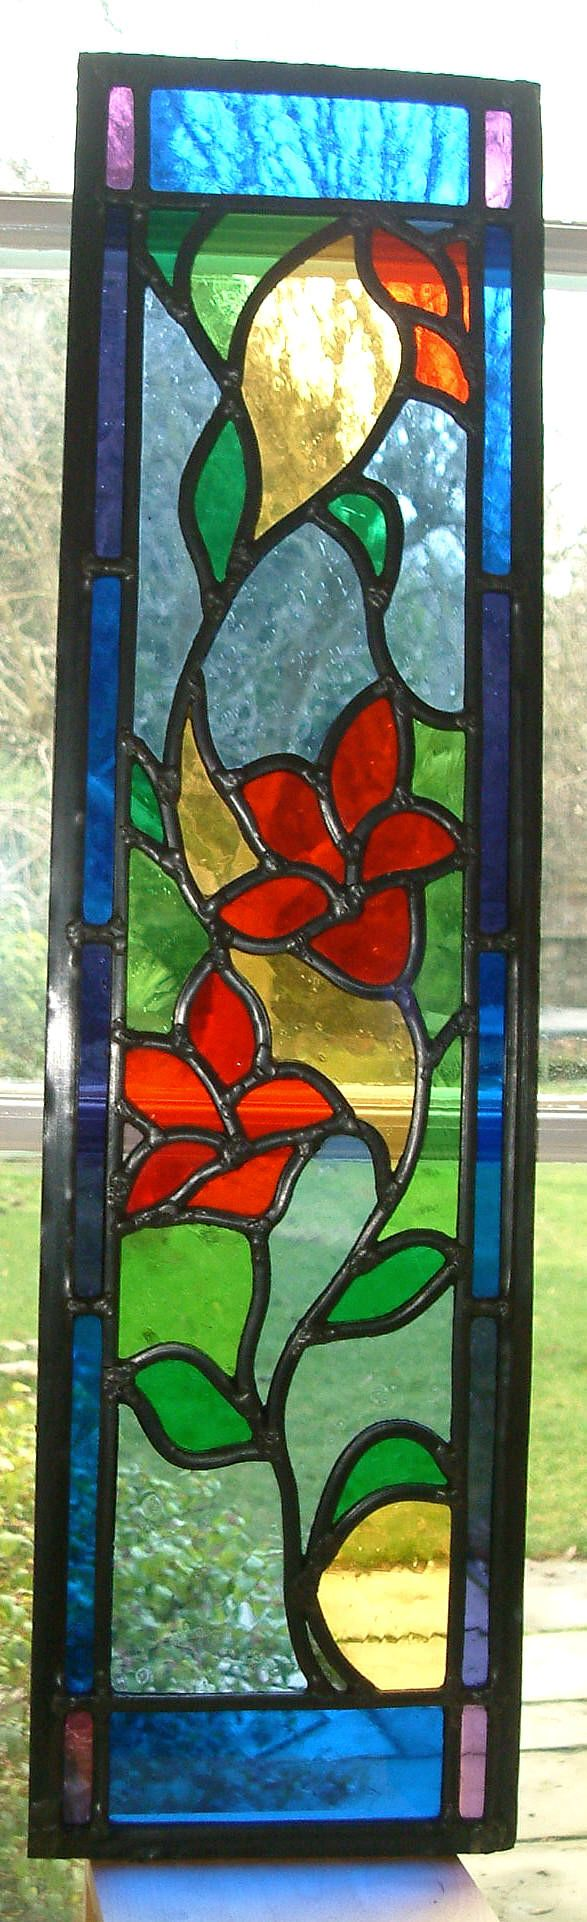 Stained Glass Window Designs | Carol Arnold stained glass windows and designs - bristol, somerset ...